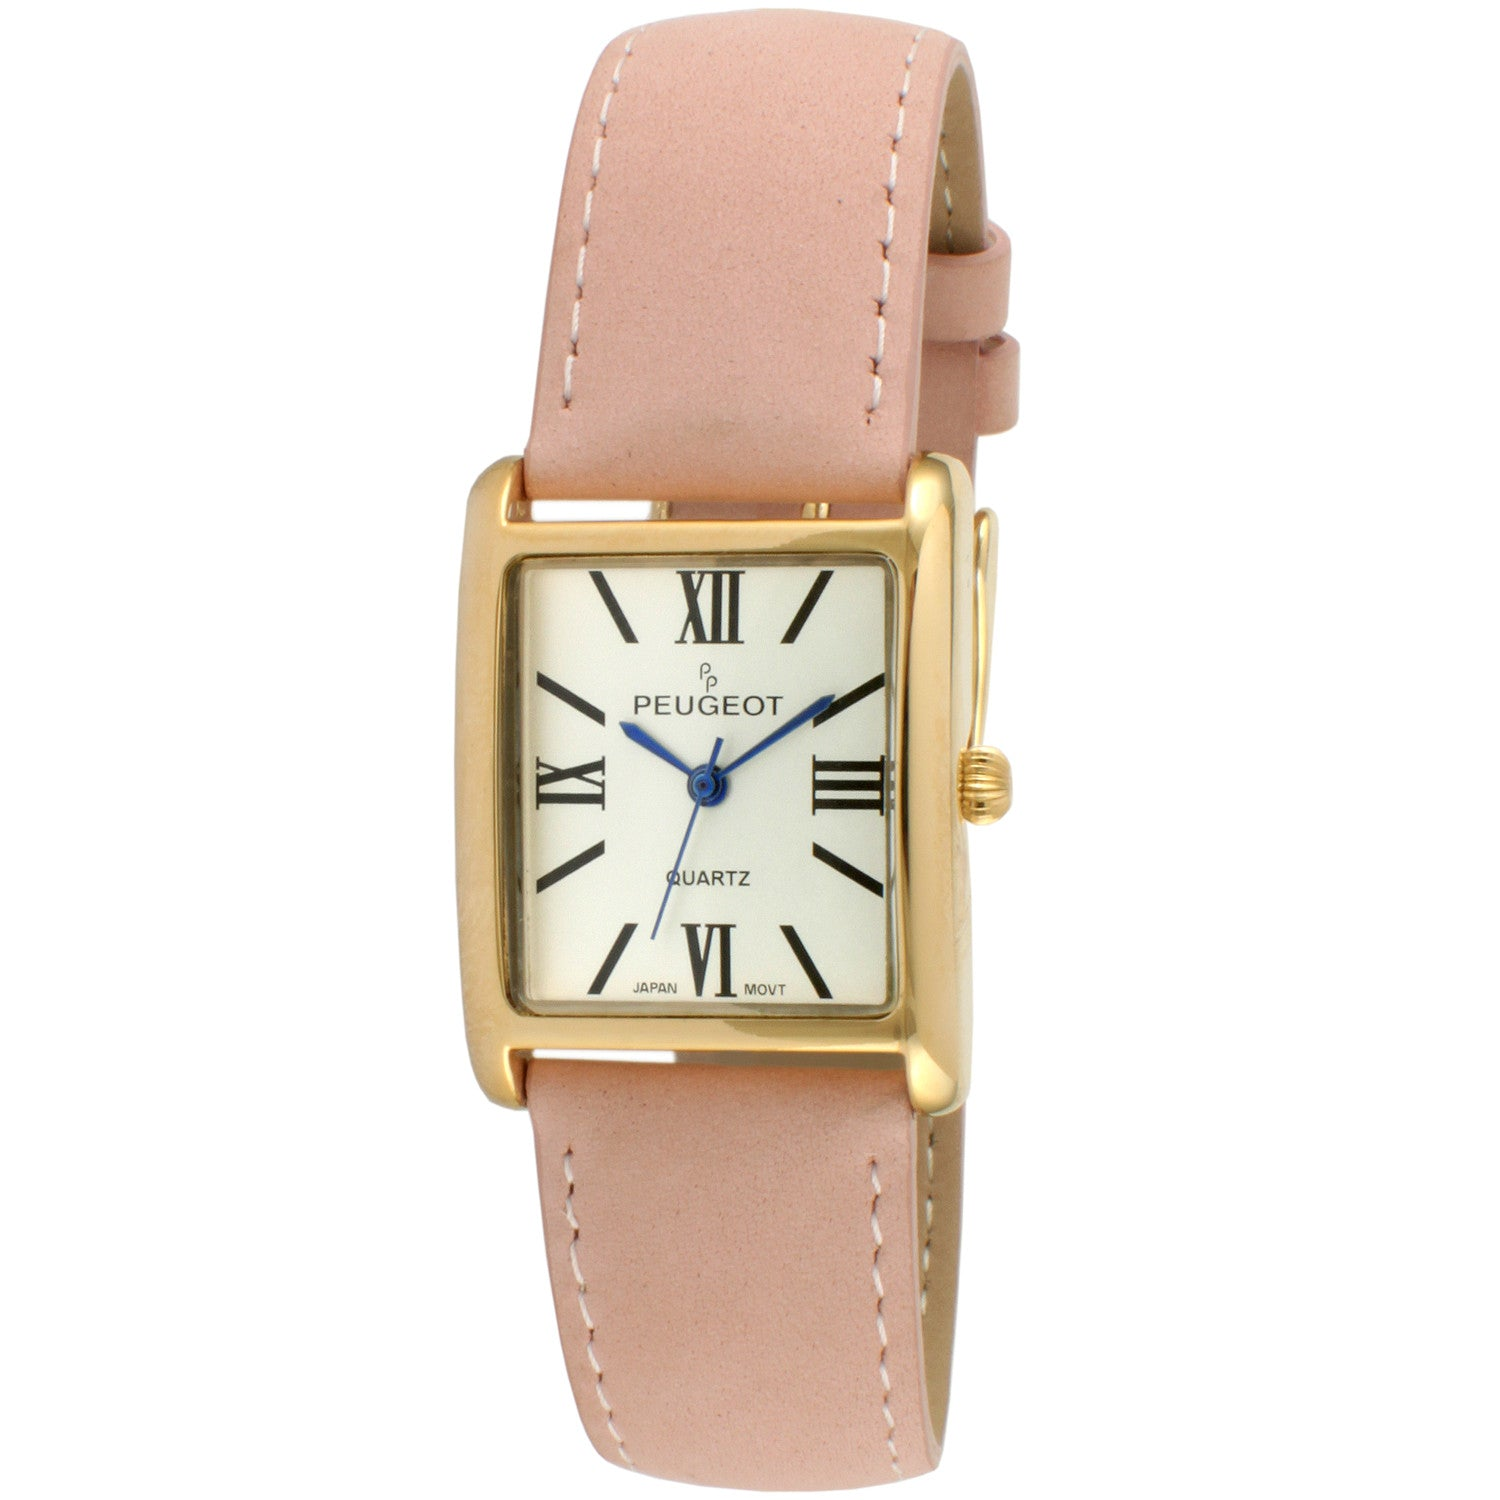 womens diamonds and watches five copy that top insulting time model ten watch gold s transformed white by tortue women small t pink arent aren cartier